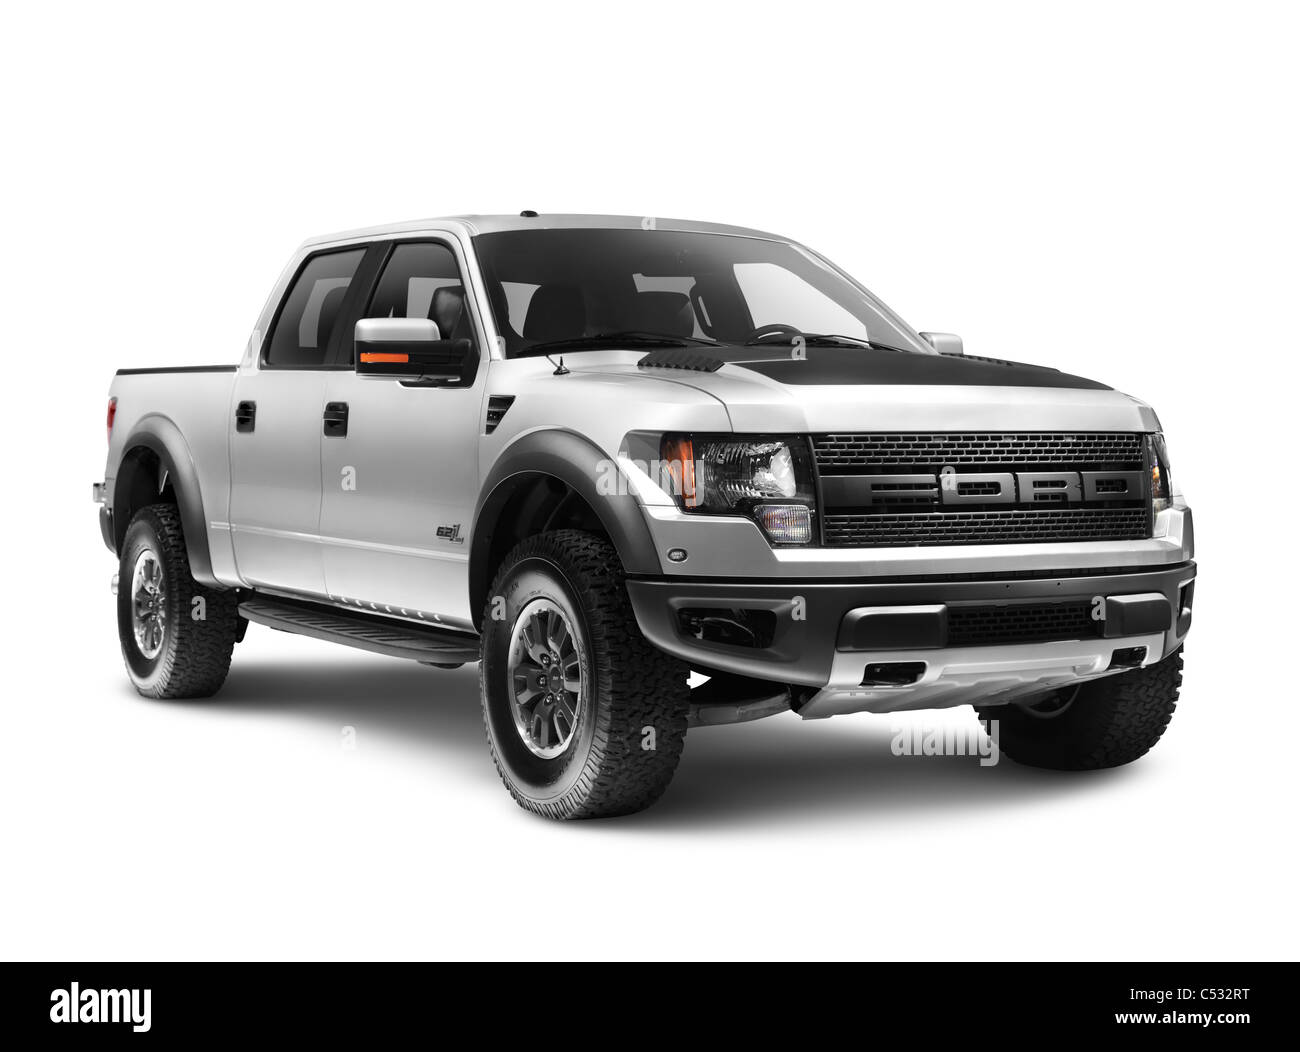 Silver 2011 Ford F-150 Raptor SVT truck isolated on white background with clipping path Stock Photo